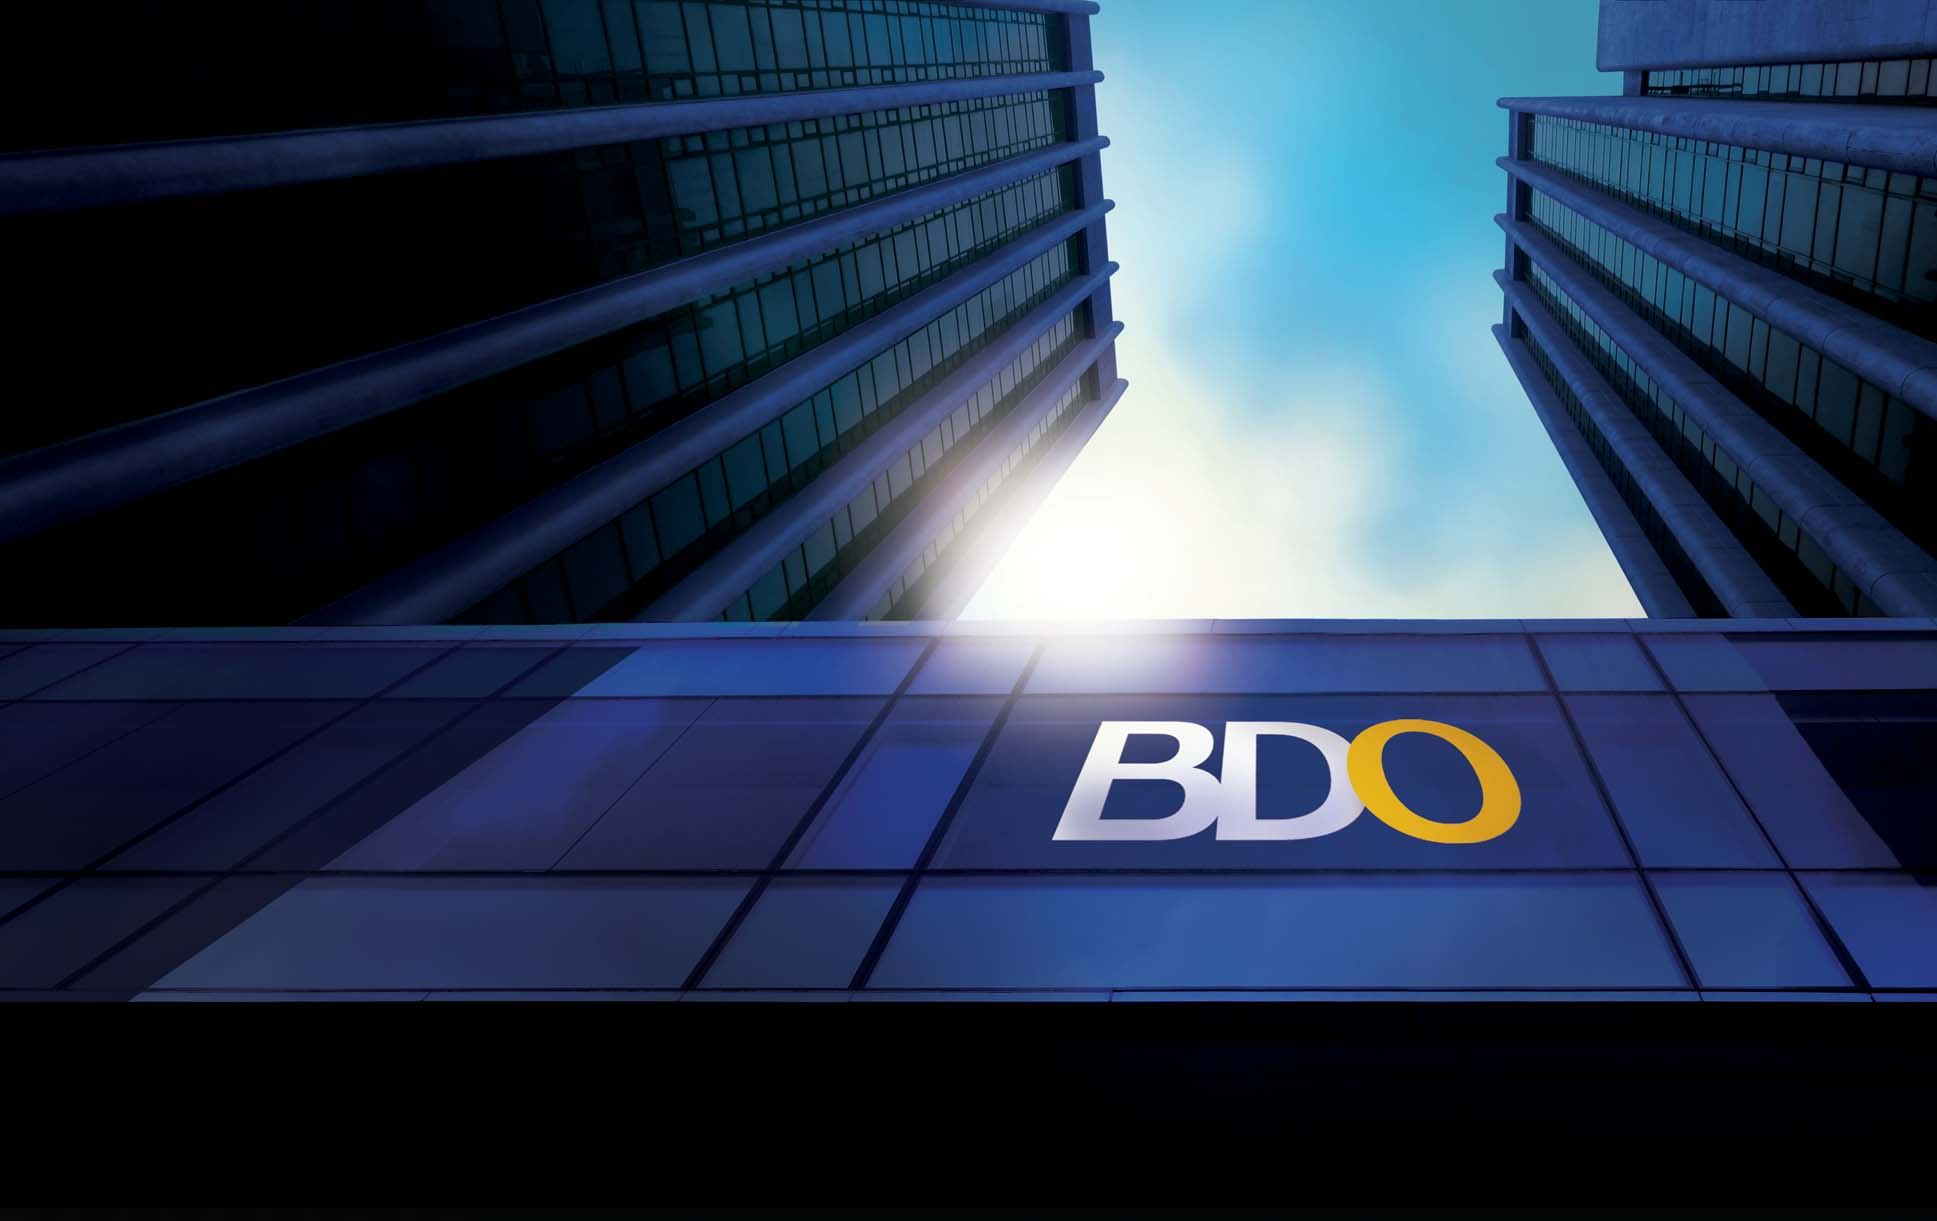 BDO Posts 24.3 Billion in Net Income Due to P22.4 Billion in Uprfont Provisions